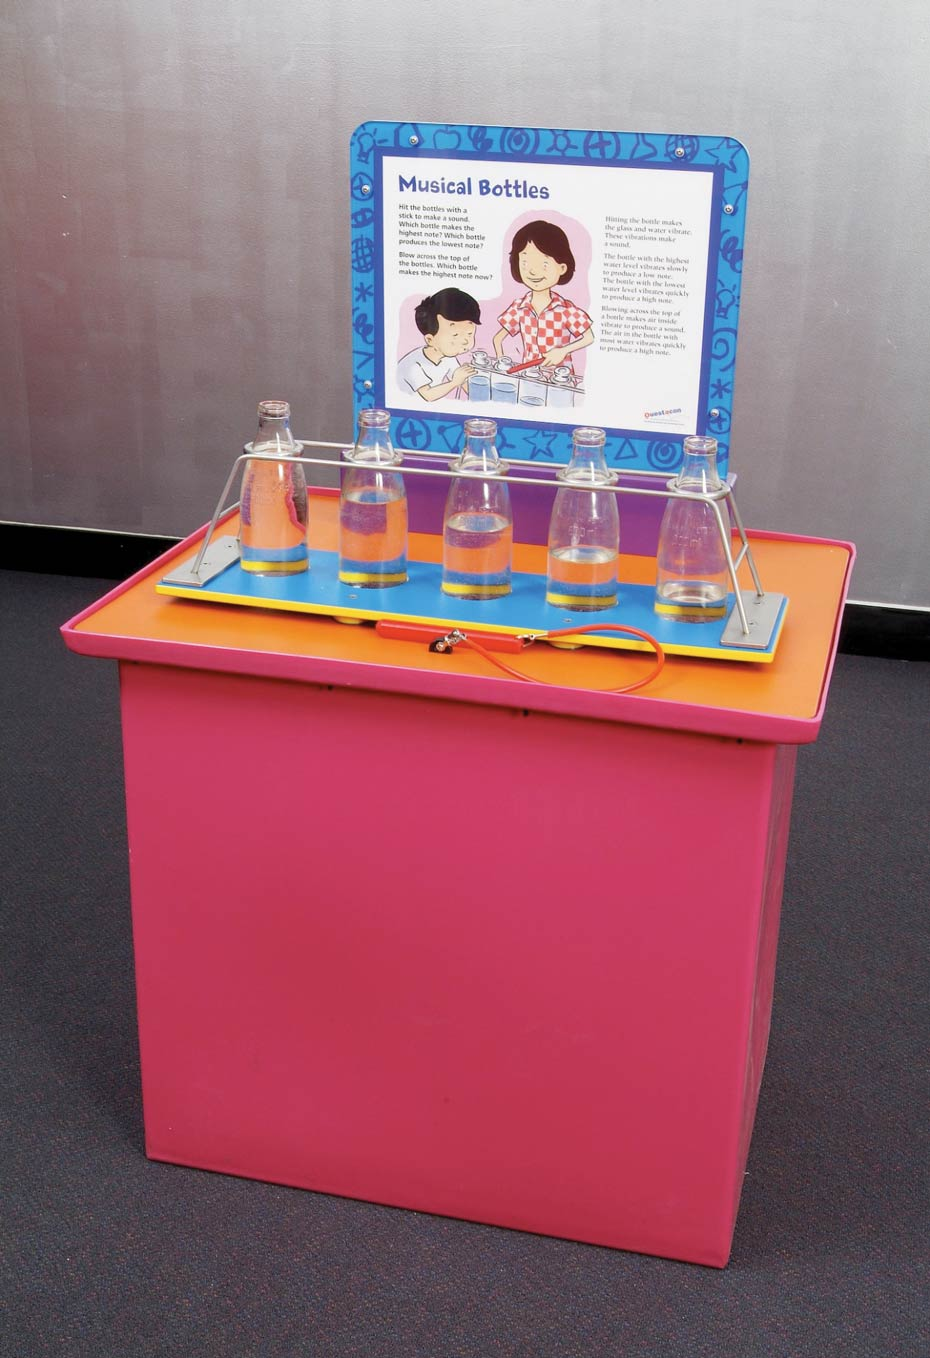 A red and orange exhibit table, with a white and blue information panel at the back. On top of the table are 5 milk bottles filled with different levels of water.